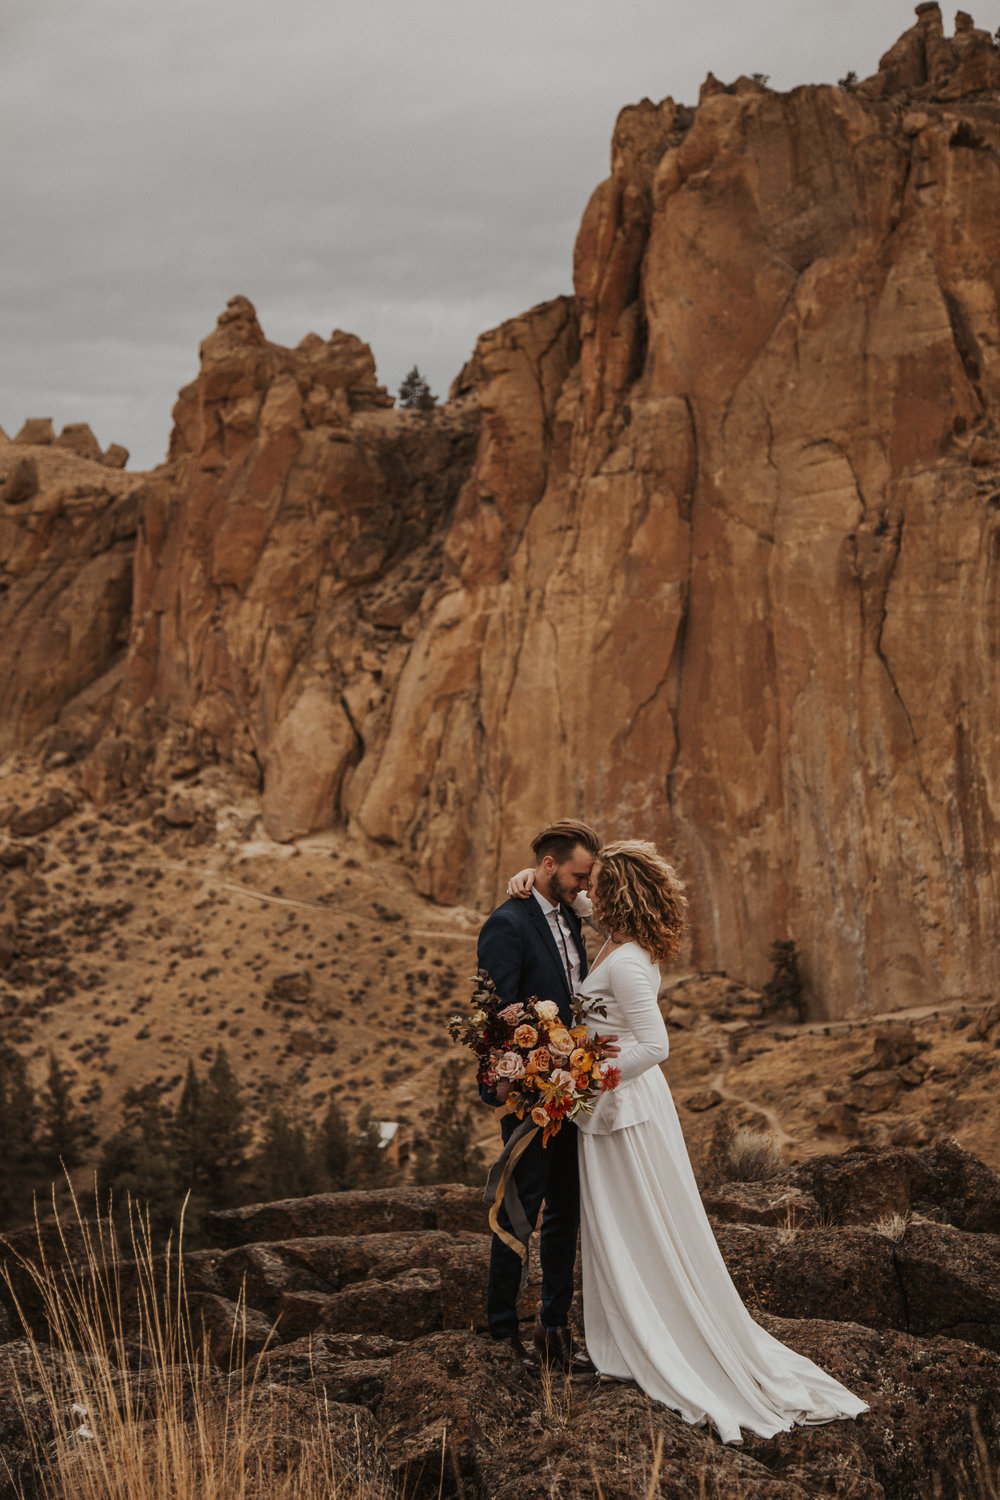 August-muse-images-smith-rock-elopement-oregon-bri-dylan-15.jpg